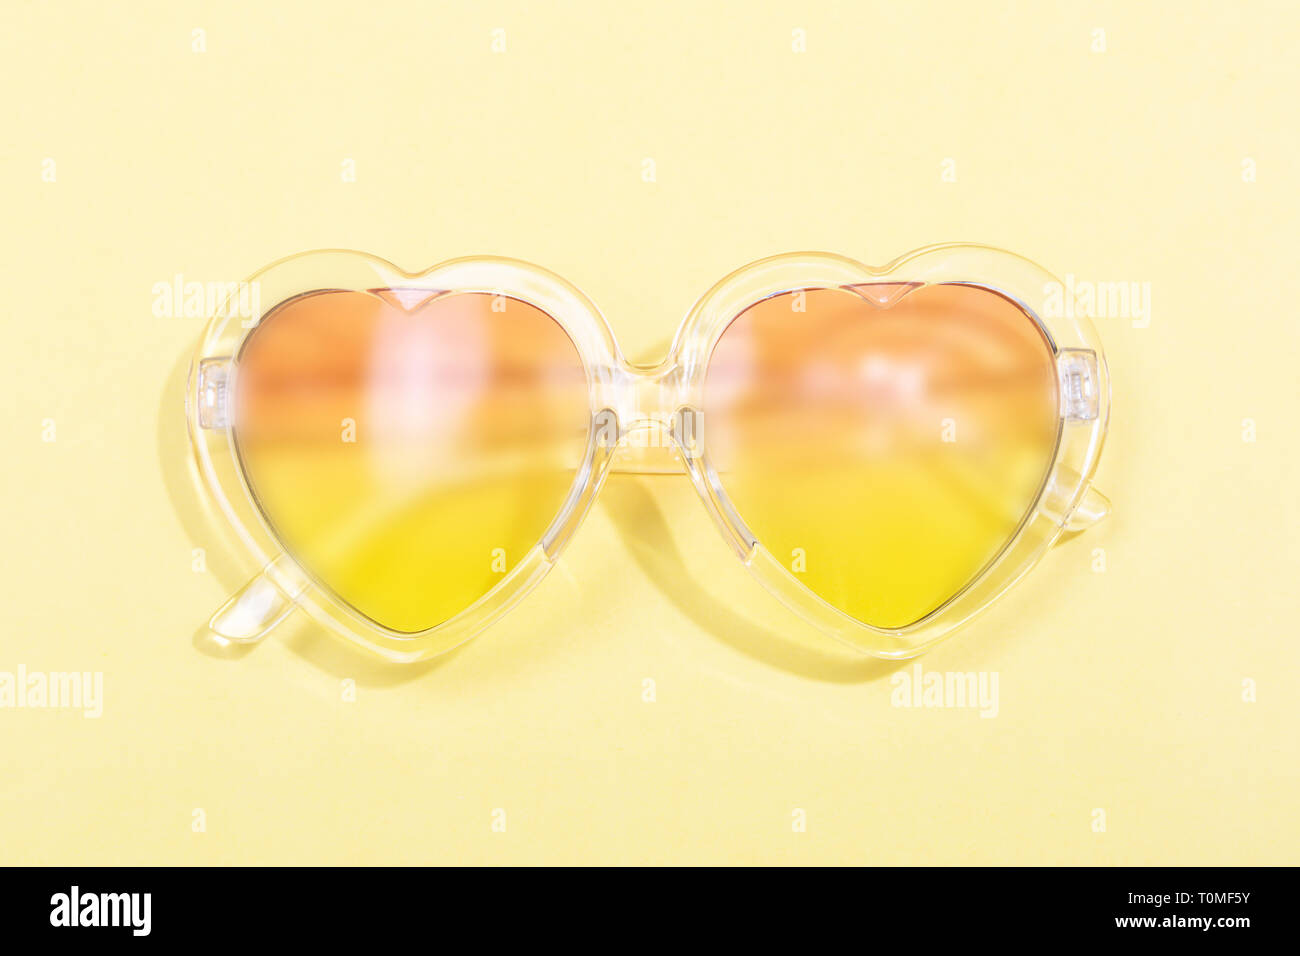 e4eb4ef20c34 Heart shaped sunglasses with gradient lenses. Pastel yellow background